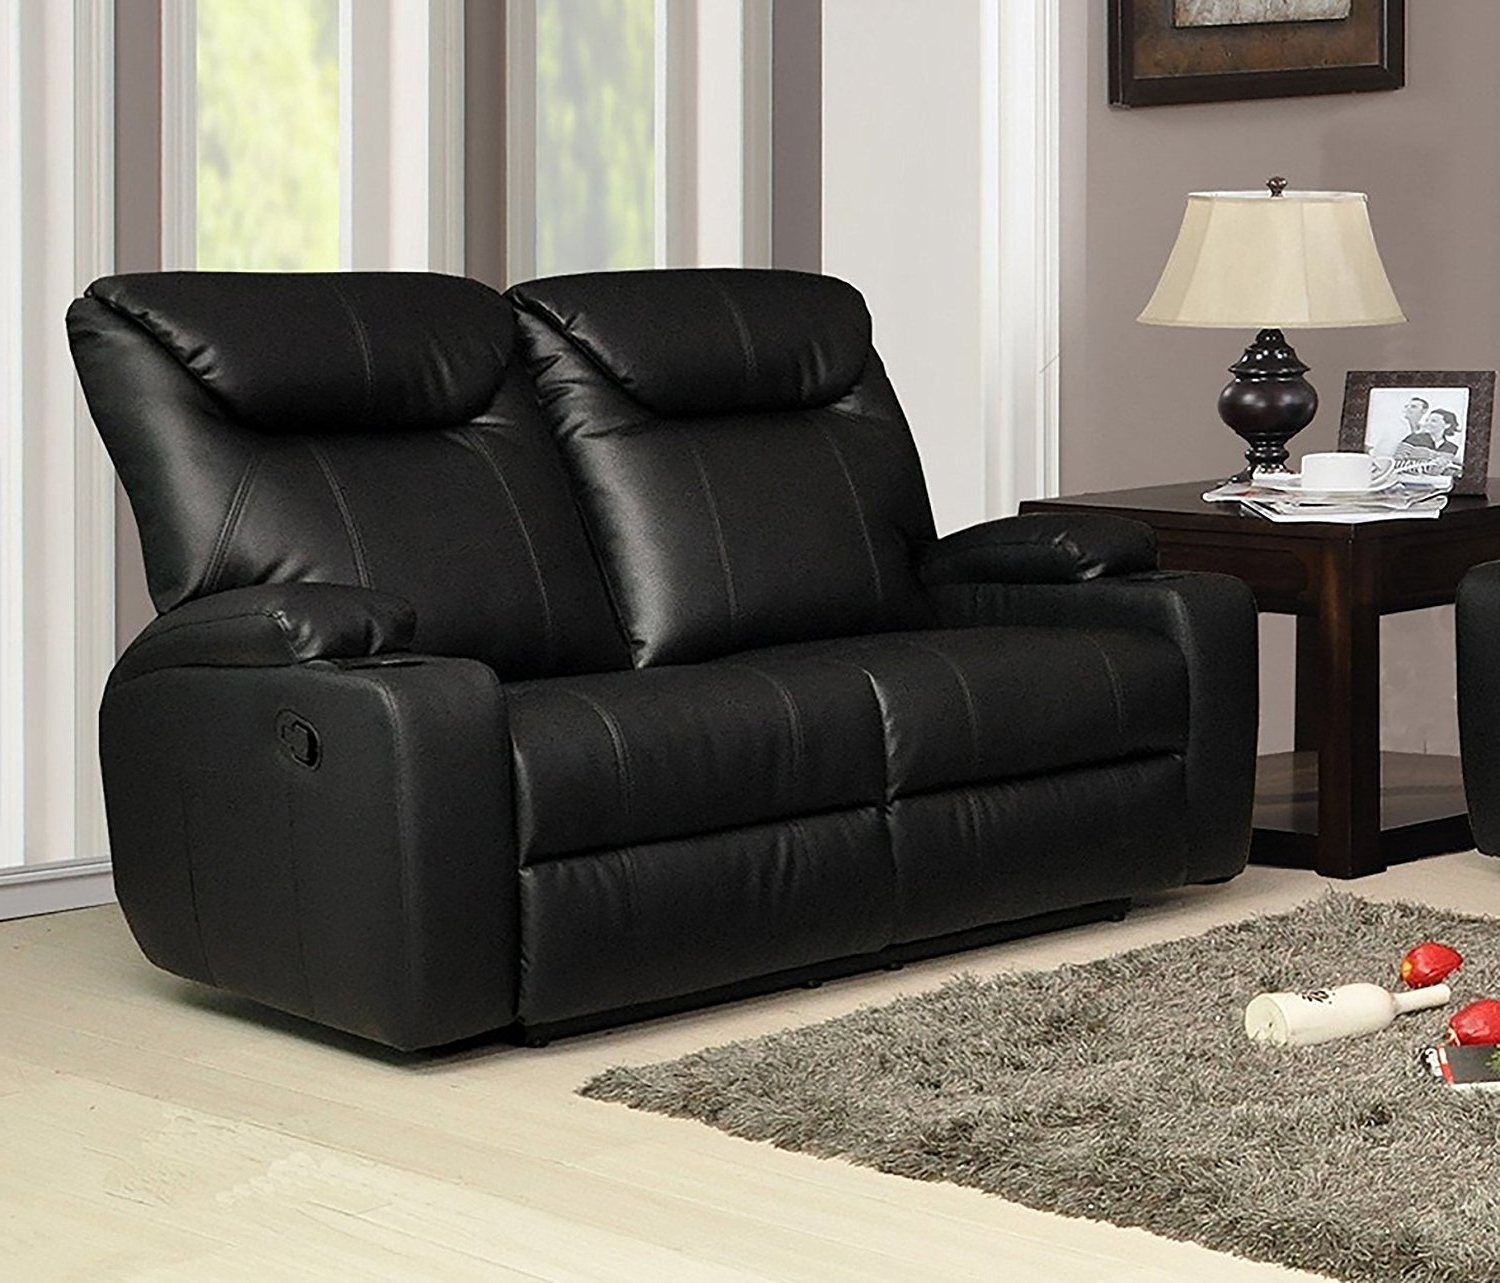 2 Seater Leather Recliner Sofa Cheap Reclining Loveseat With Throughout Famous 2 Seater Recliner Leather Sofas (View 19 of 20)